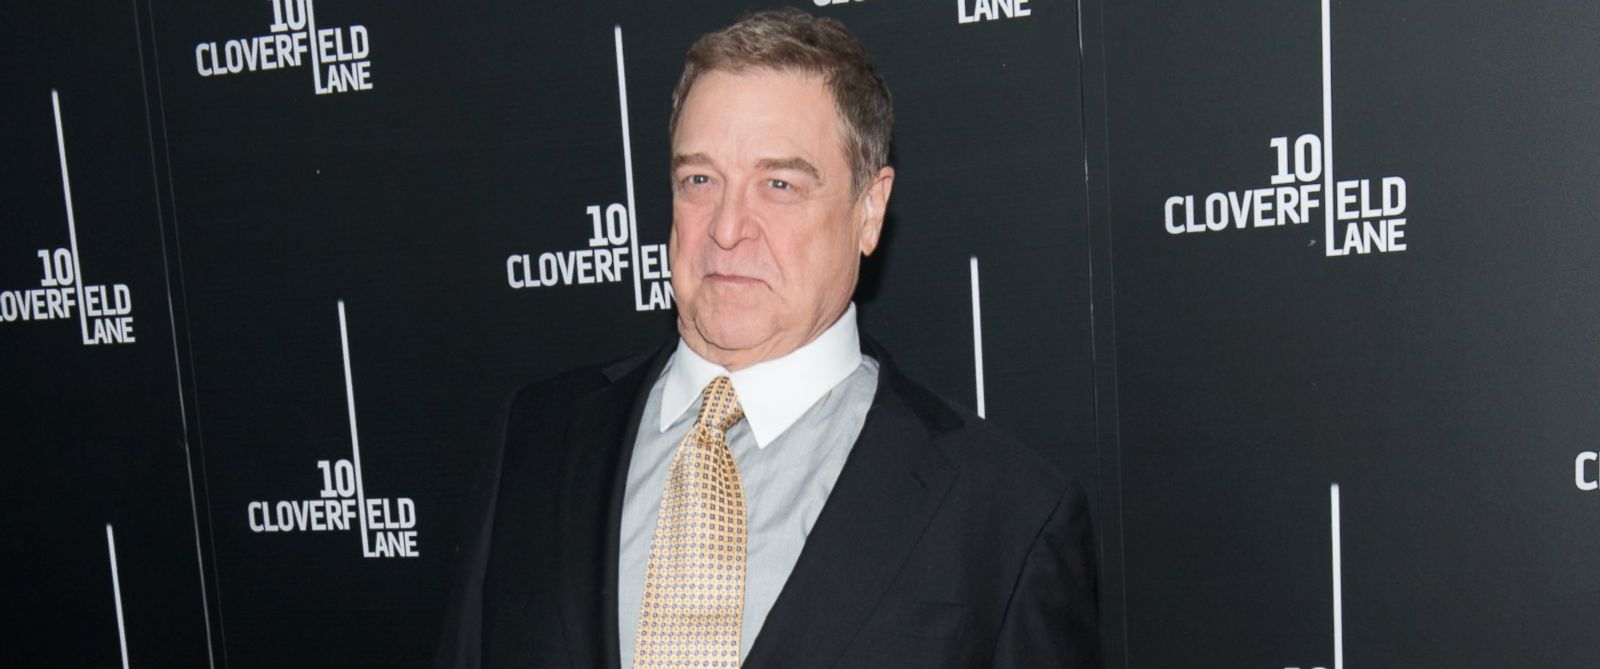 PHOTO: Actor John Goodman attends 10 Cloverfield Lane New York premiere at AMC Loews Lincoln Square 13 theater, March 8, 2016 in New York.